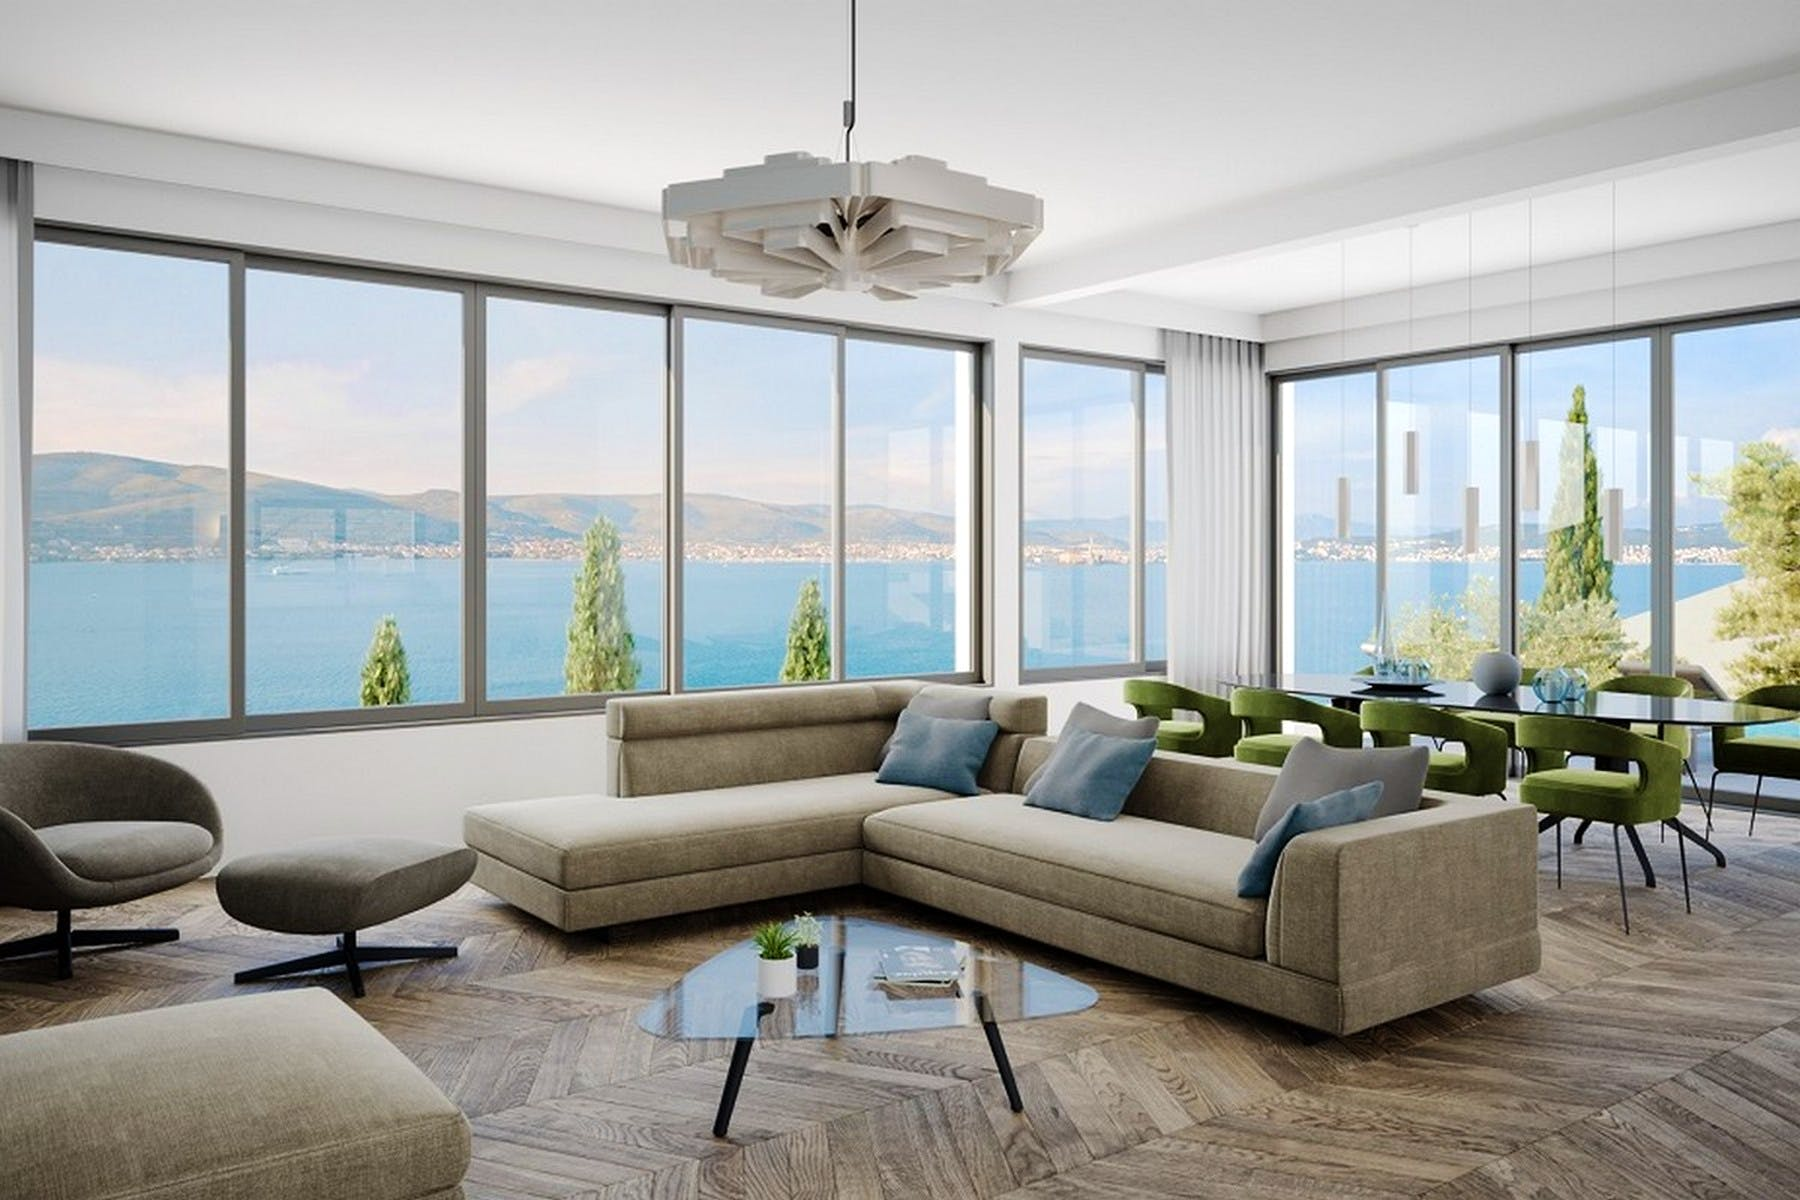 Open concept living area with sea view